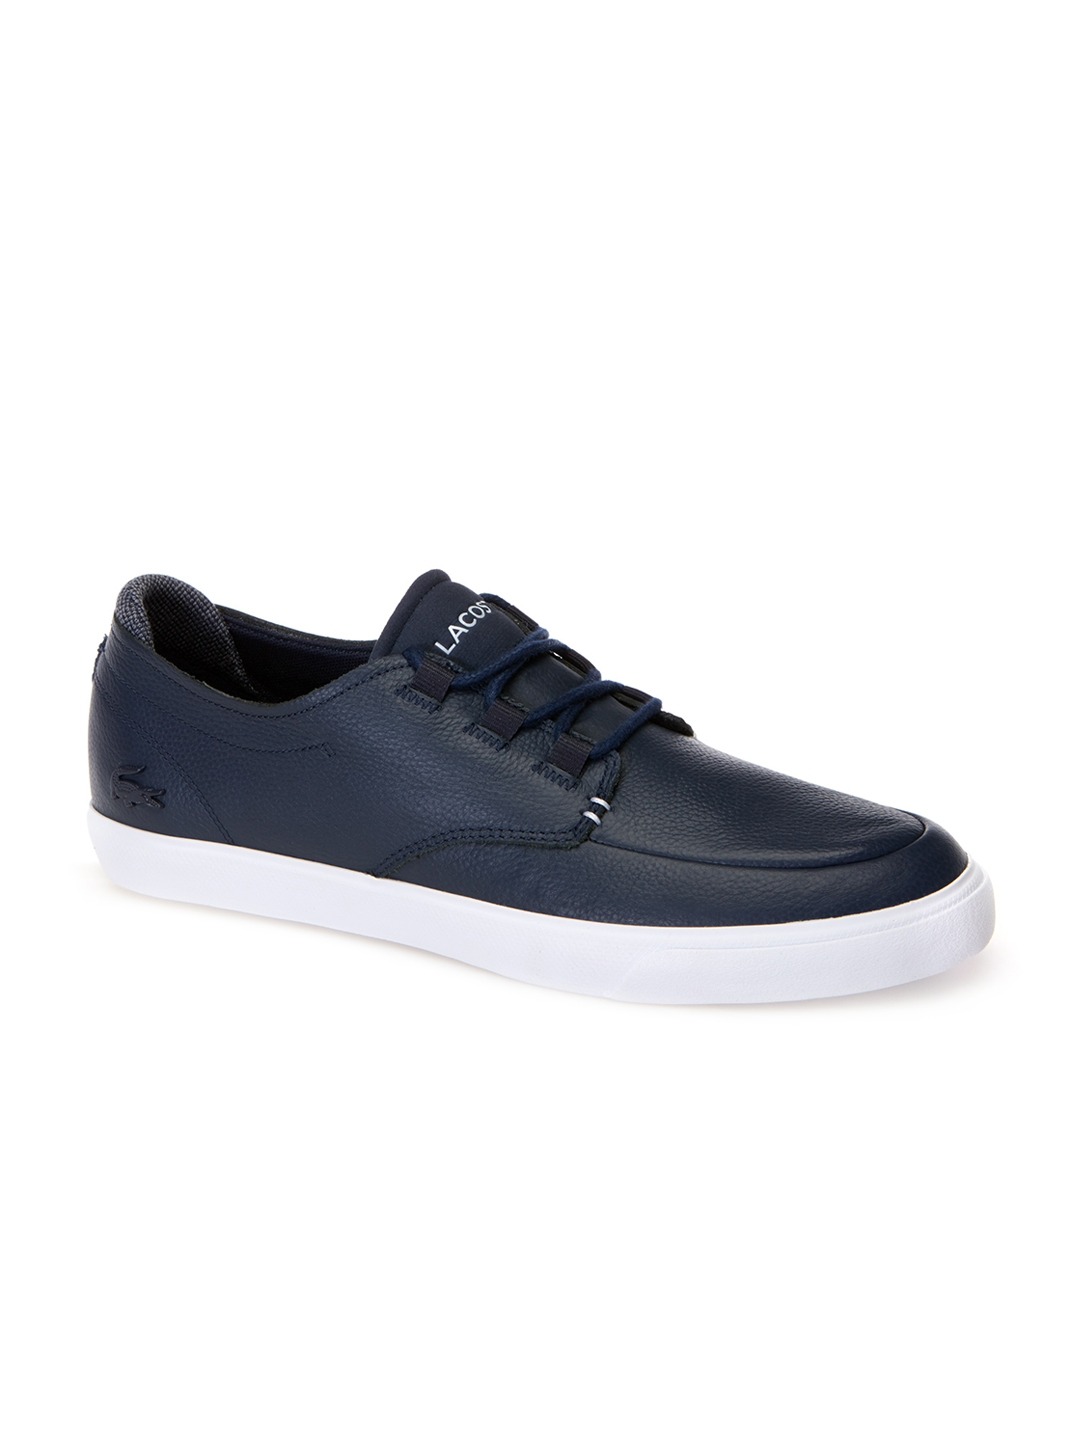 64eb55191 Buy Lacoste Men Navy Blue Leather Sneakers - Casual Shoes for Men ...